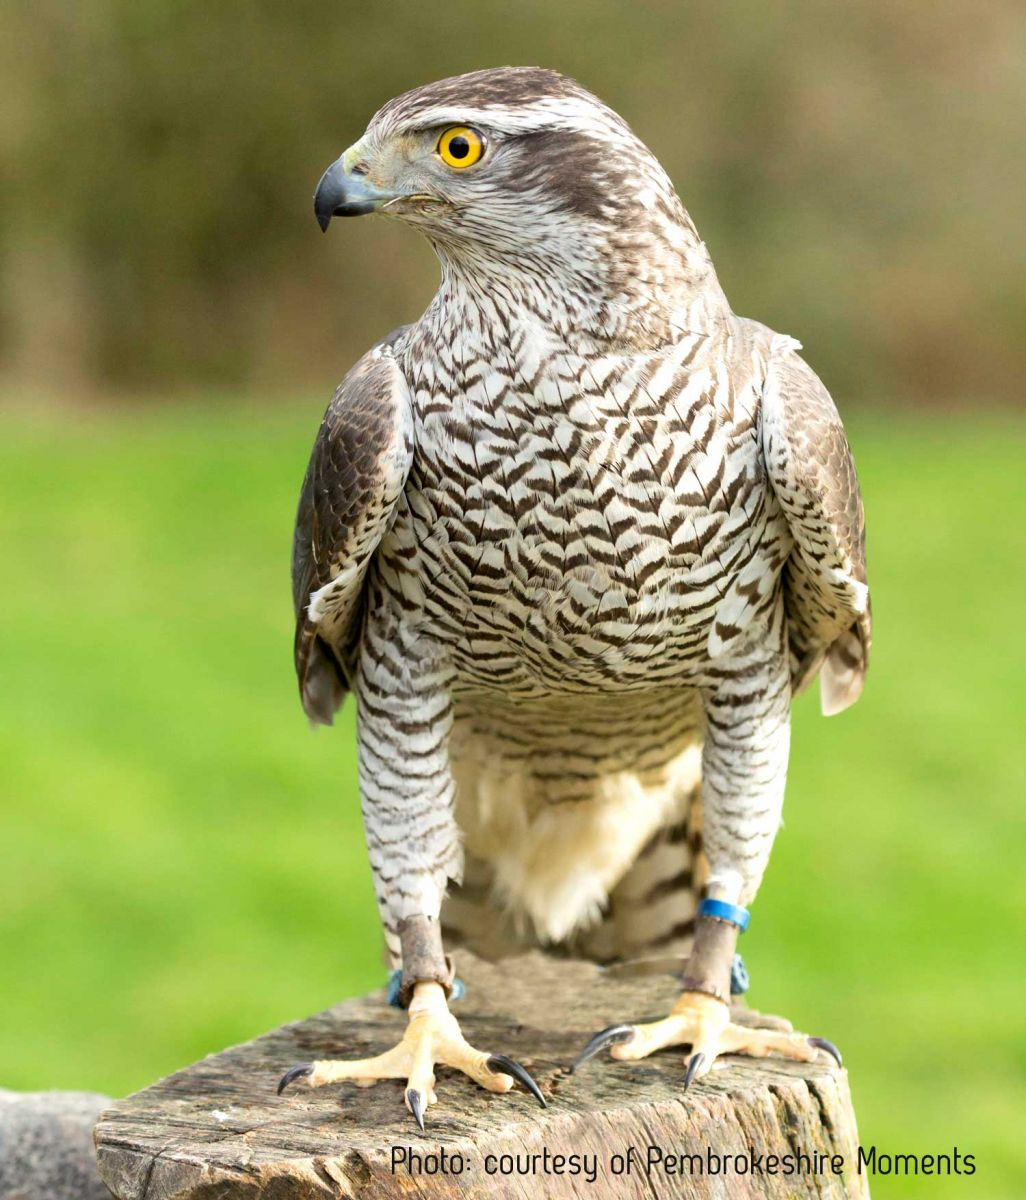 The British Bird Of Prey Centre Carmarthenshire